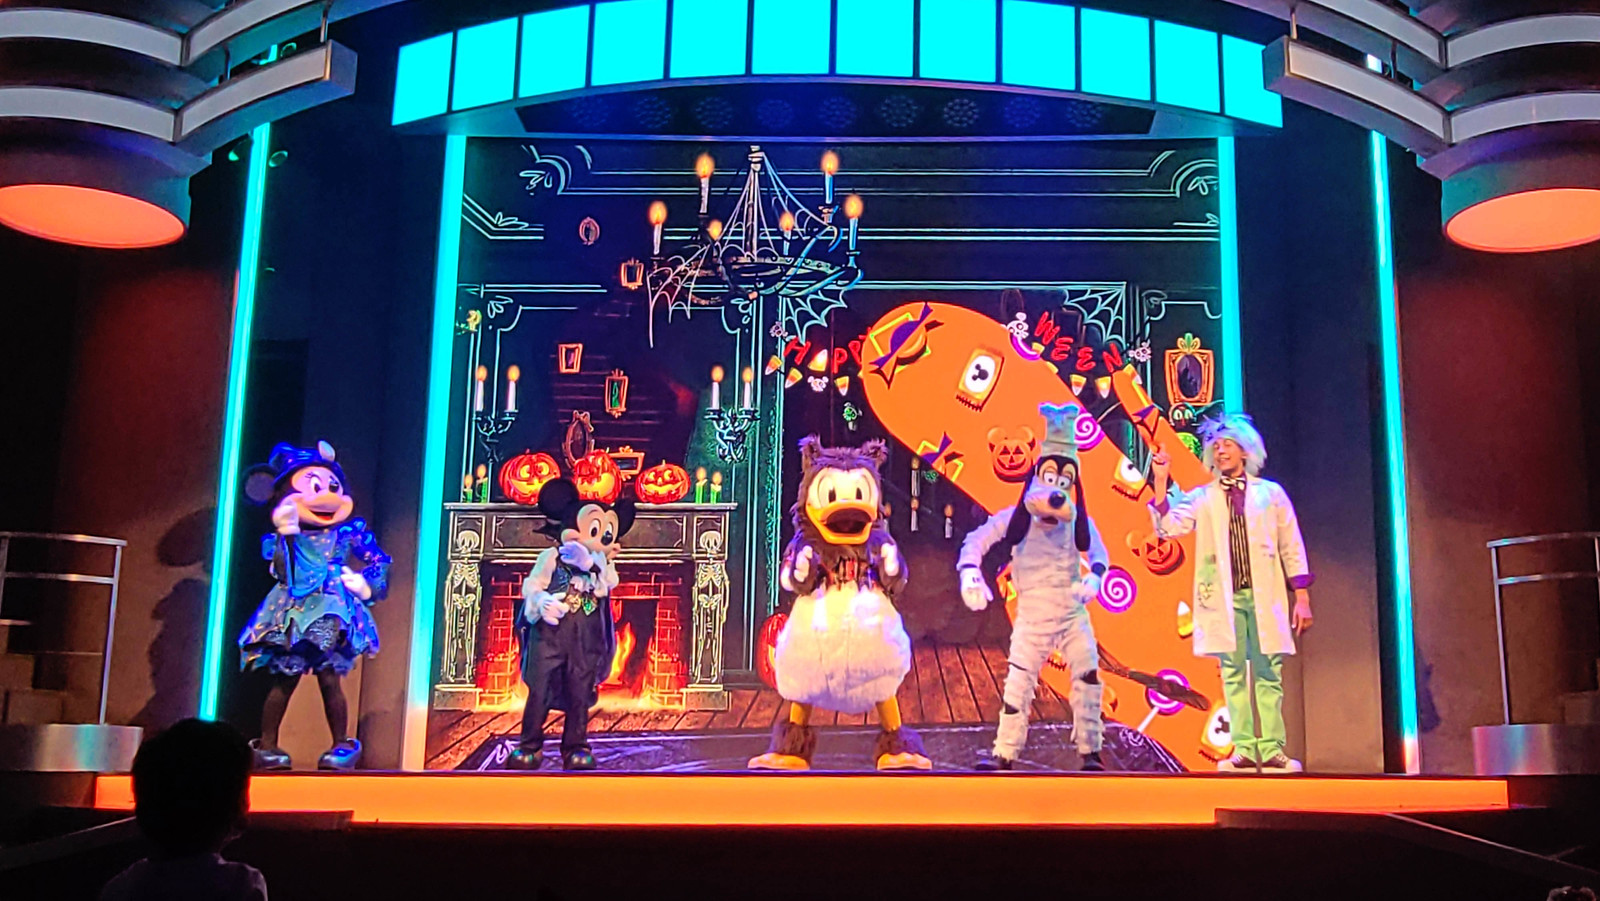 Oogie Boogie Bash Mickey's Trick & Treat show